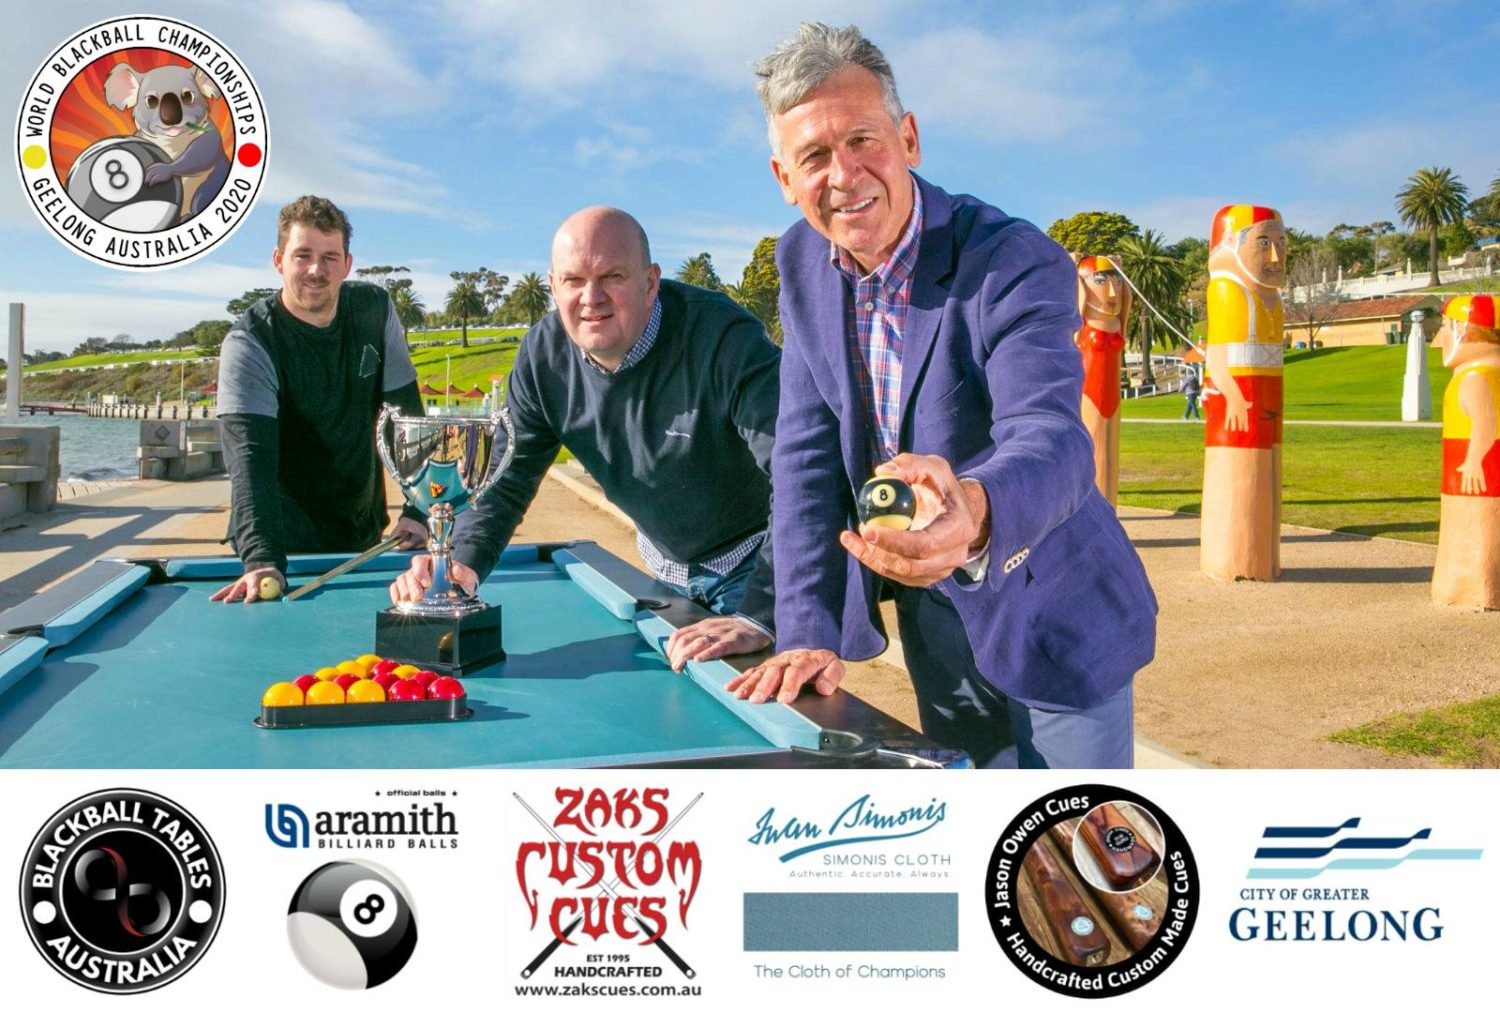 world blackball championships 2020 Geelong Australia